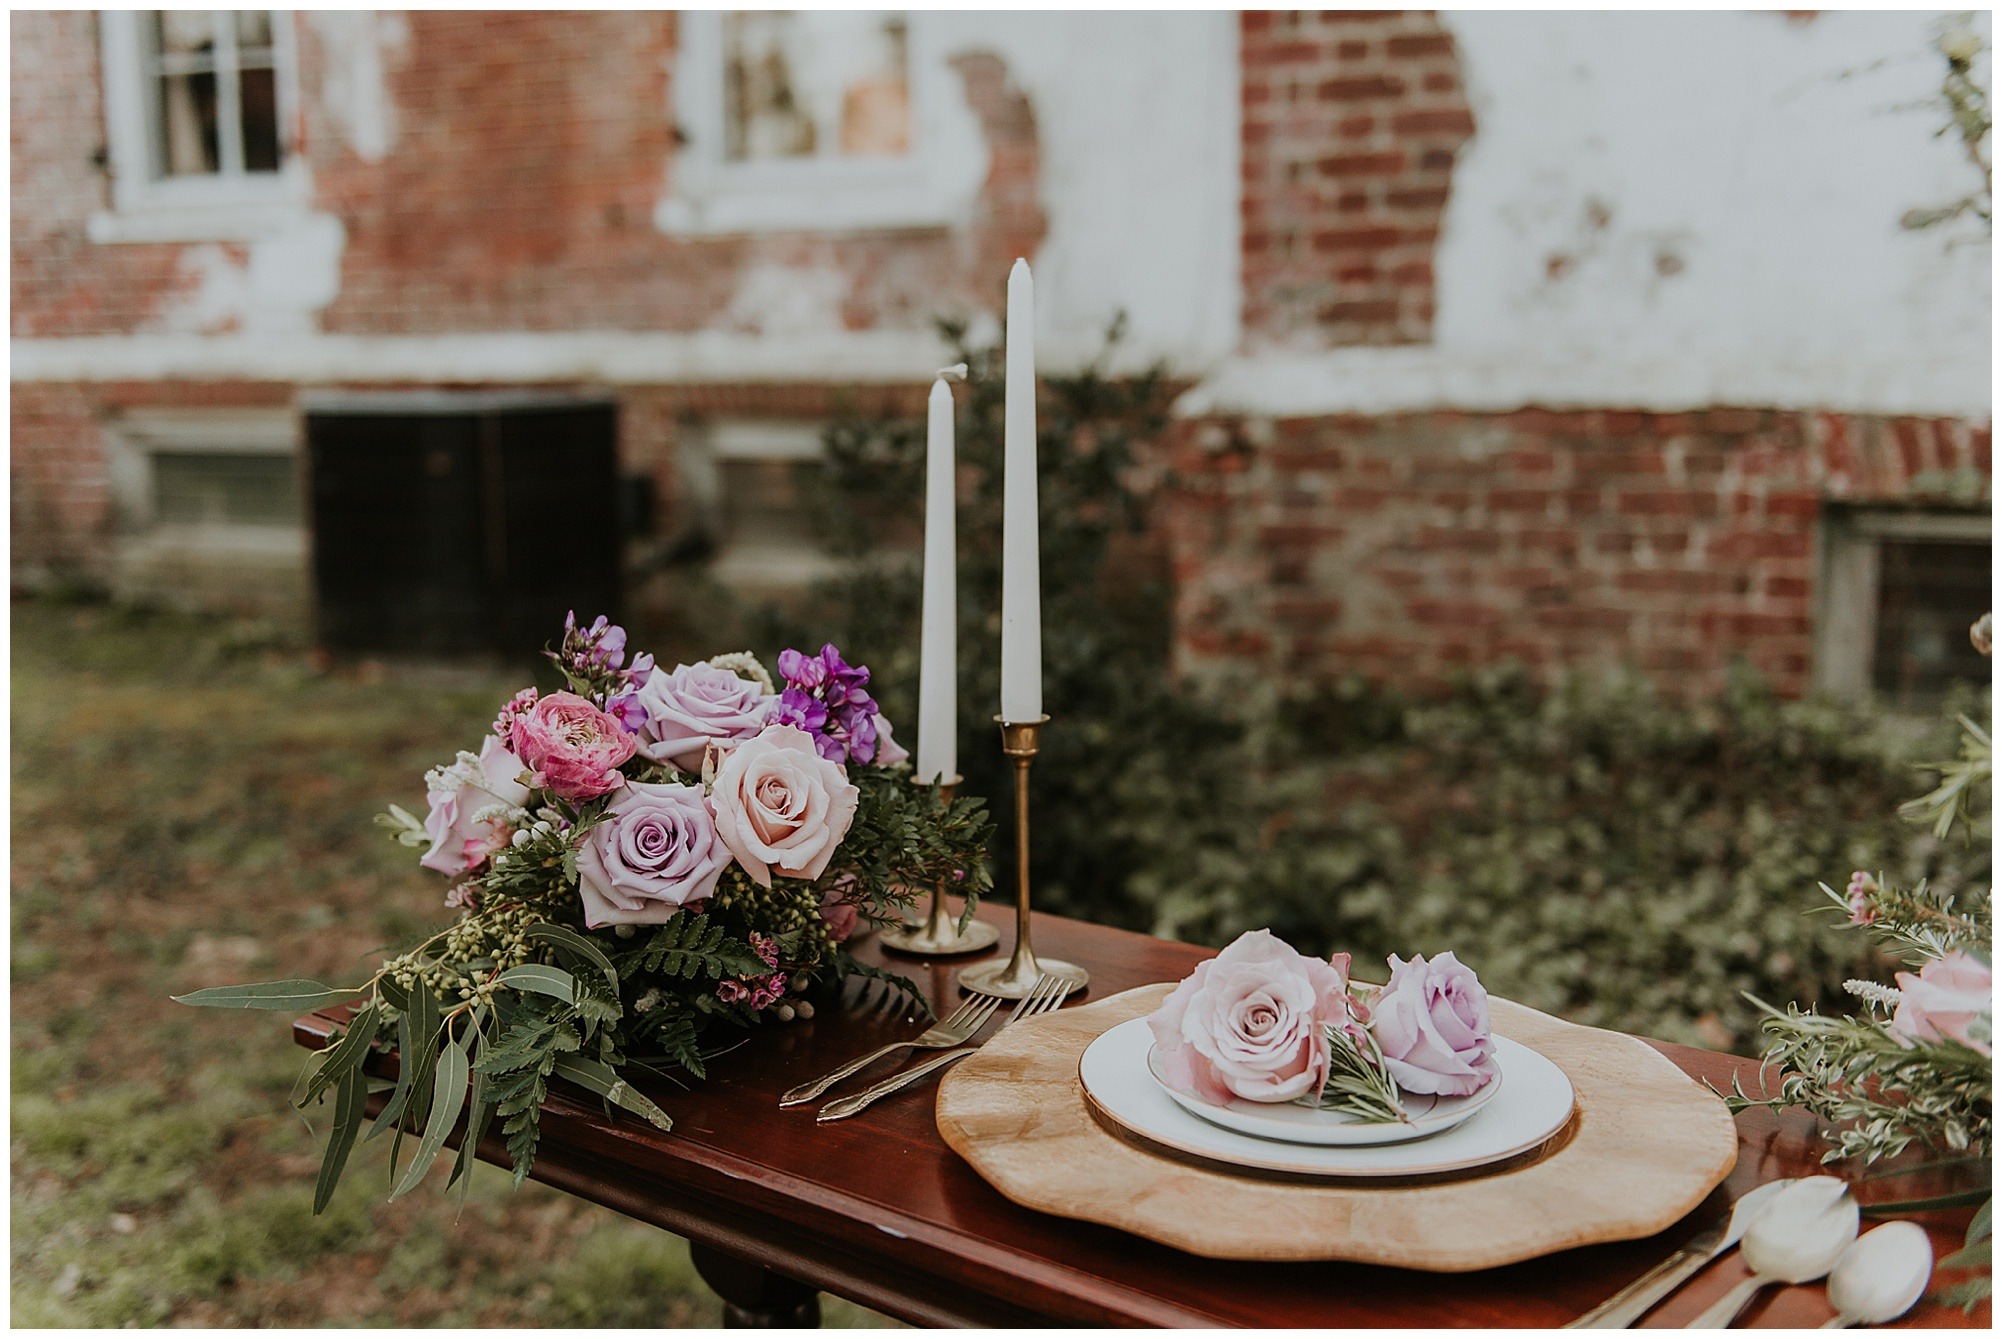 romantic and vintage inspired table setting and boho reception decor with modern vibes at chanceford hall bed and breakfast. maryland venue